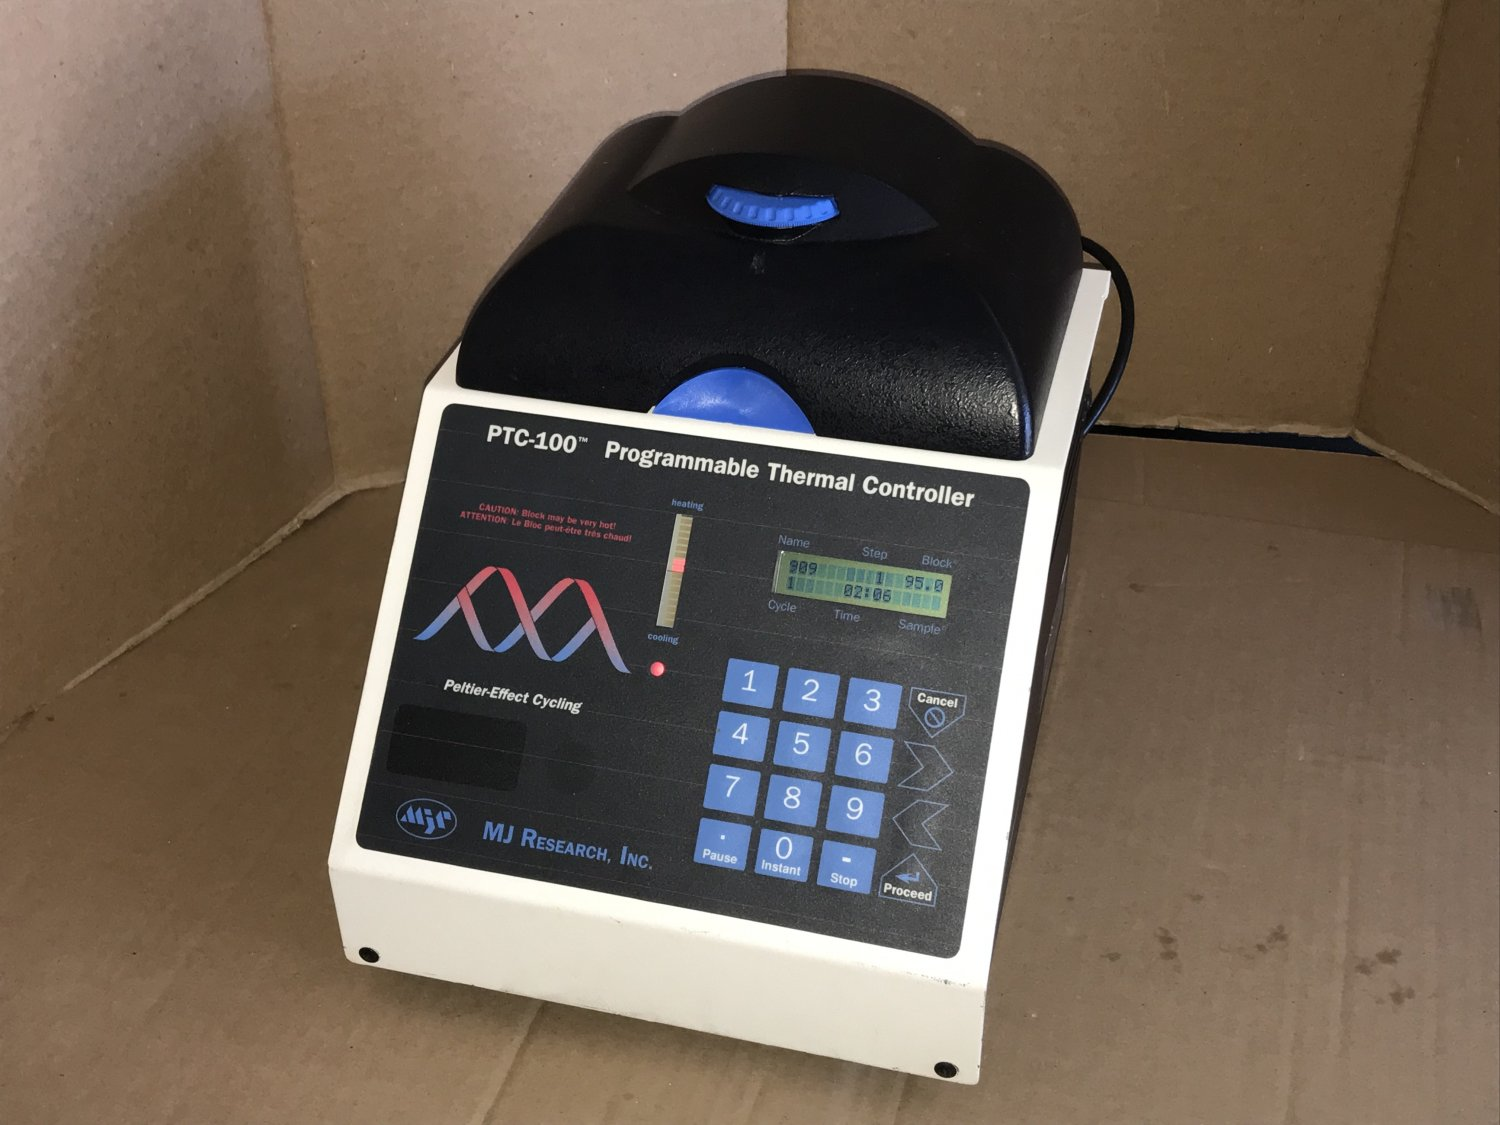 MJ Research PTC-100 Programmable Thermal Controller 60 Well Peltier Effect Cycler